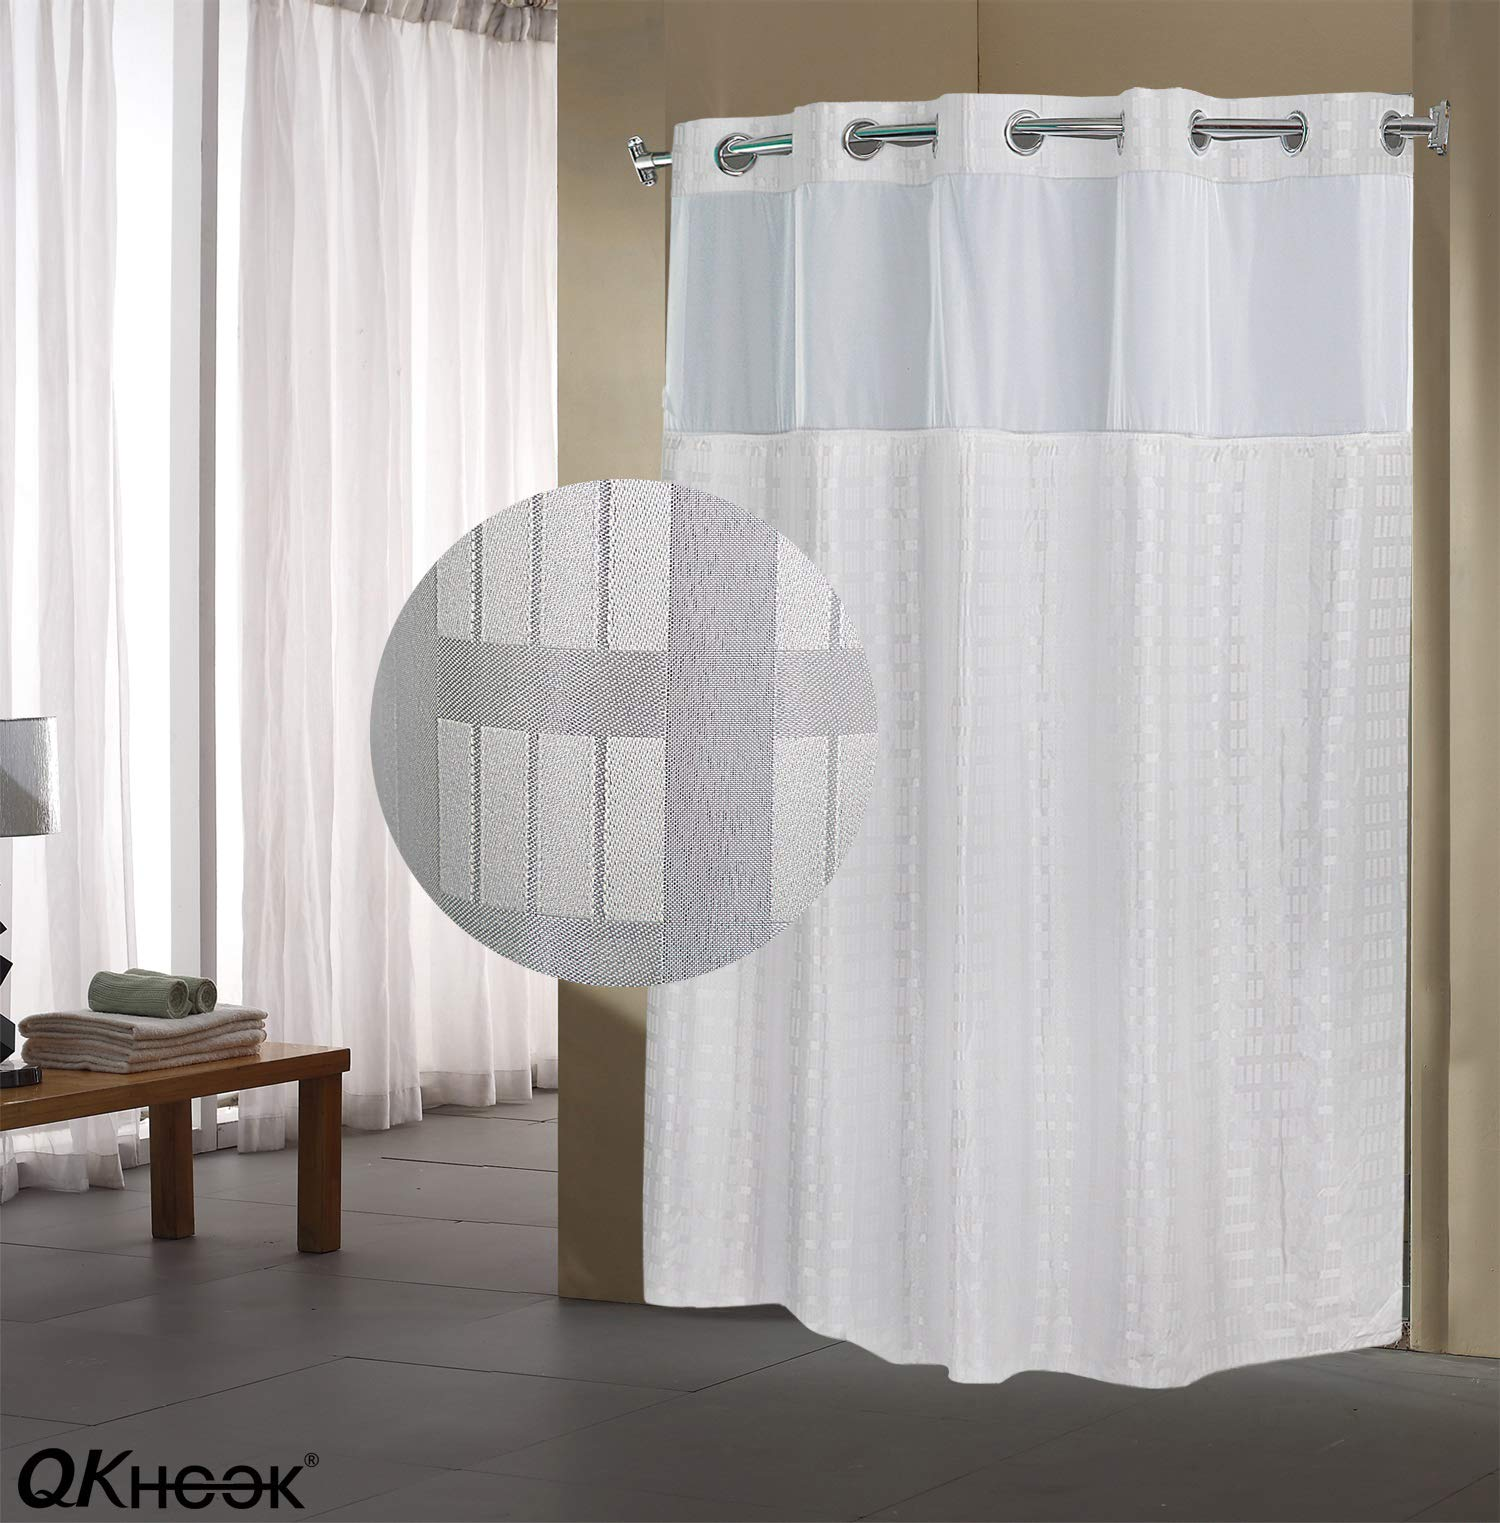 QKHOOK Hookless Shower Curtain with Snap in Liner 1 Pack 71x74 Inches Mildew Resistant Fabric Checker Water-Repellent and Antibacterial